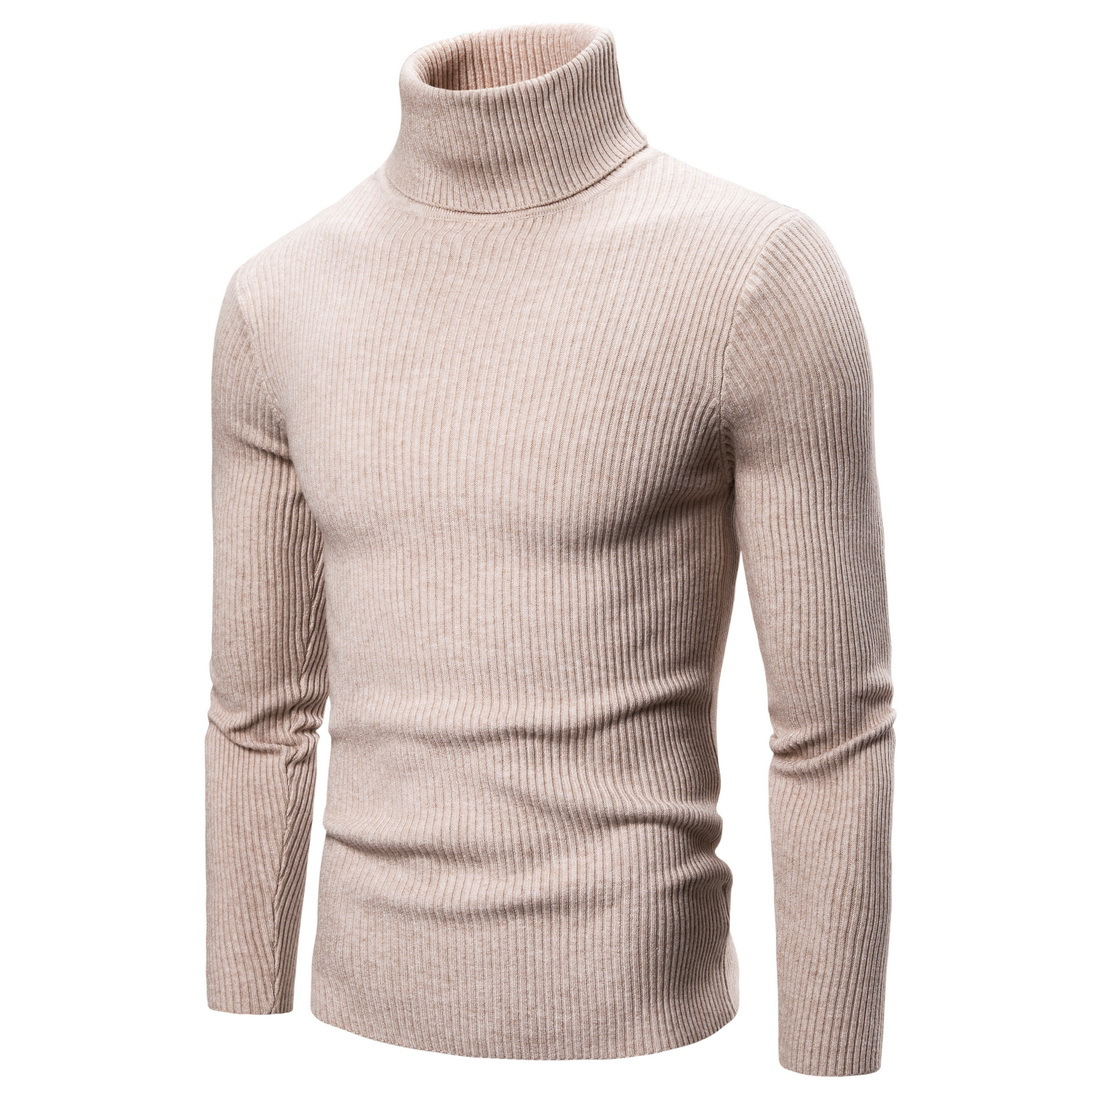 New Spring Autumn men Sweaters Clothing High Elastic Base Shirt High Lapel Solid Color Mens Sweaters khkai